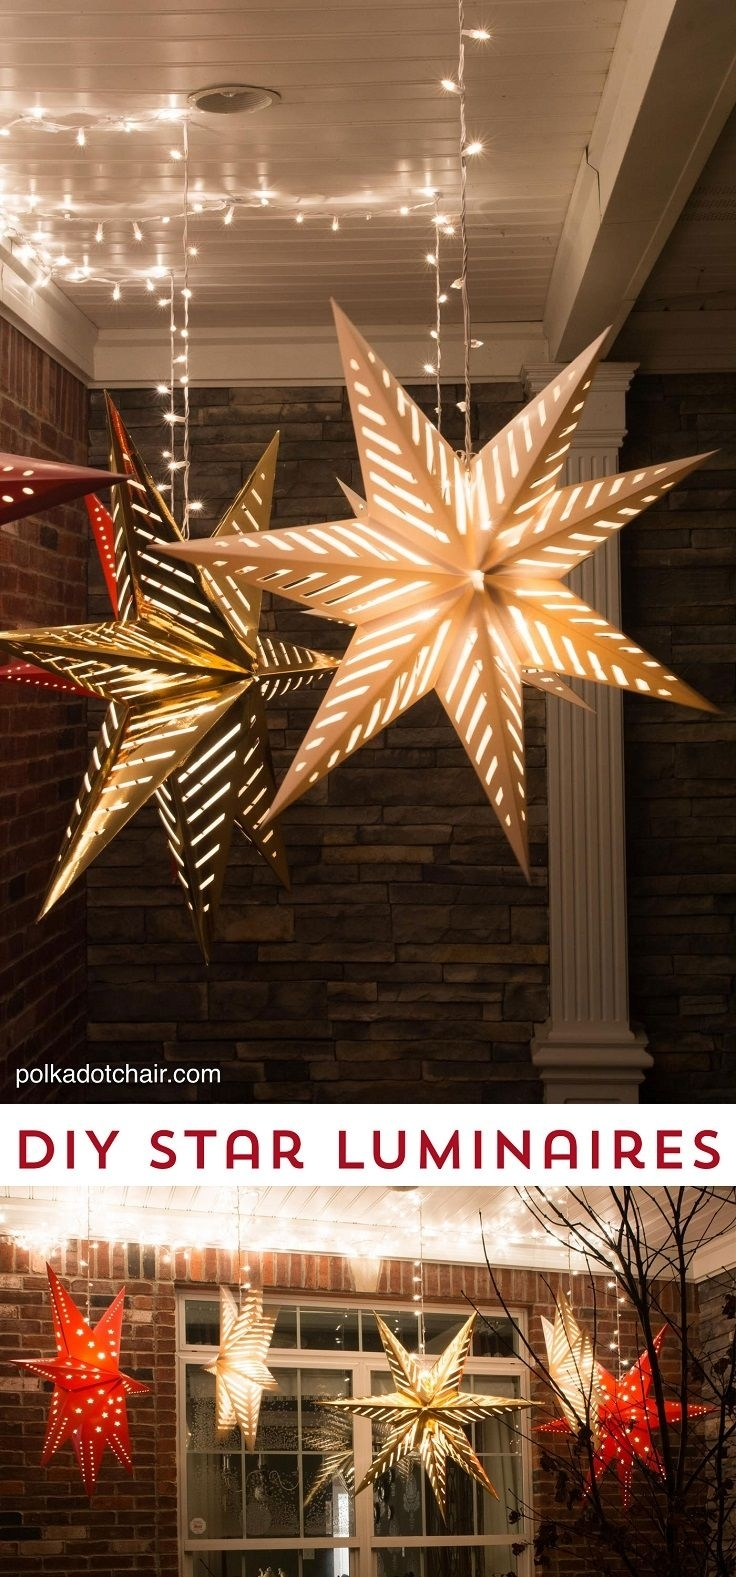 86 Best Christmas Outdoor Decor ☃ Images On Pinterest | Christmas Pertaining To Outdoor Lanterns For Christmas (Photo 9 of 20)